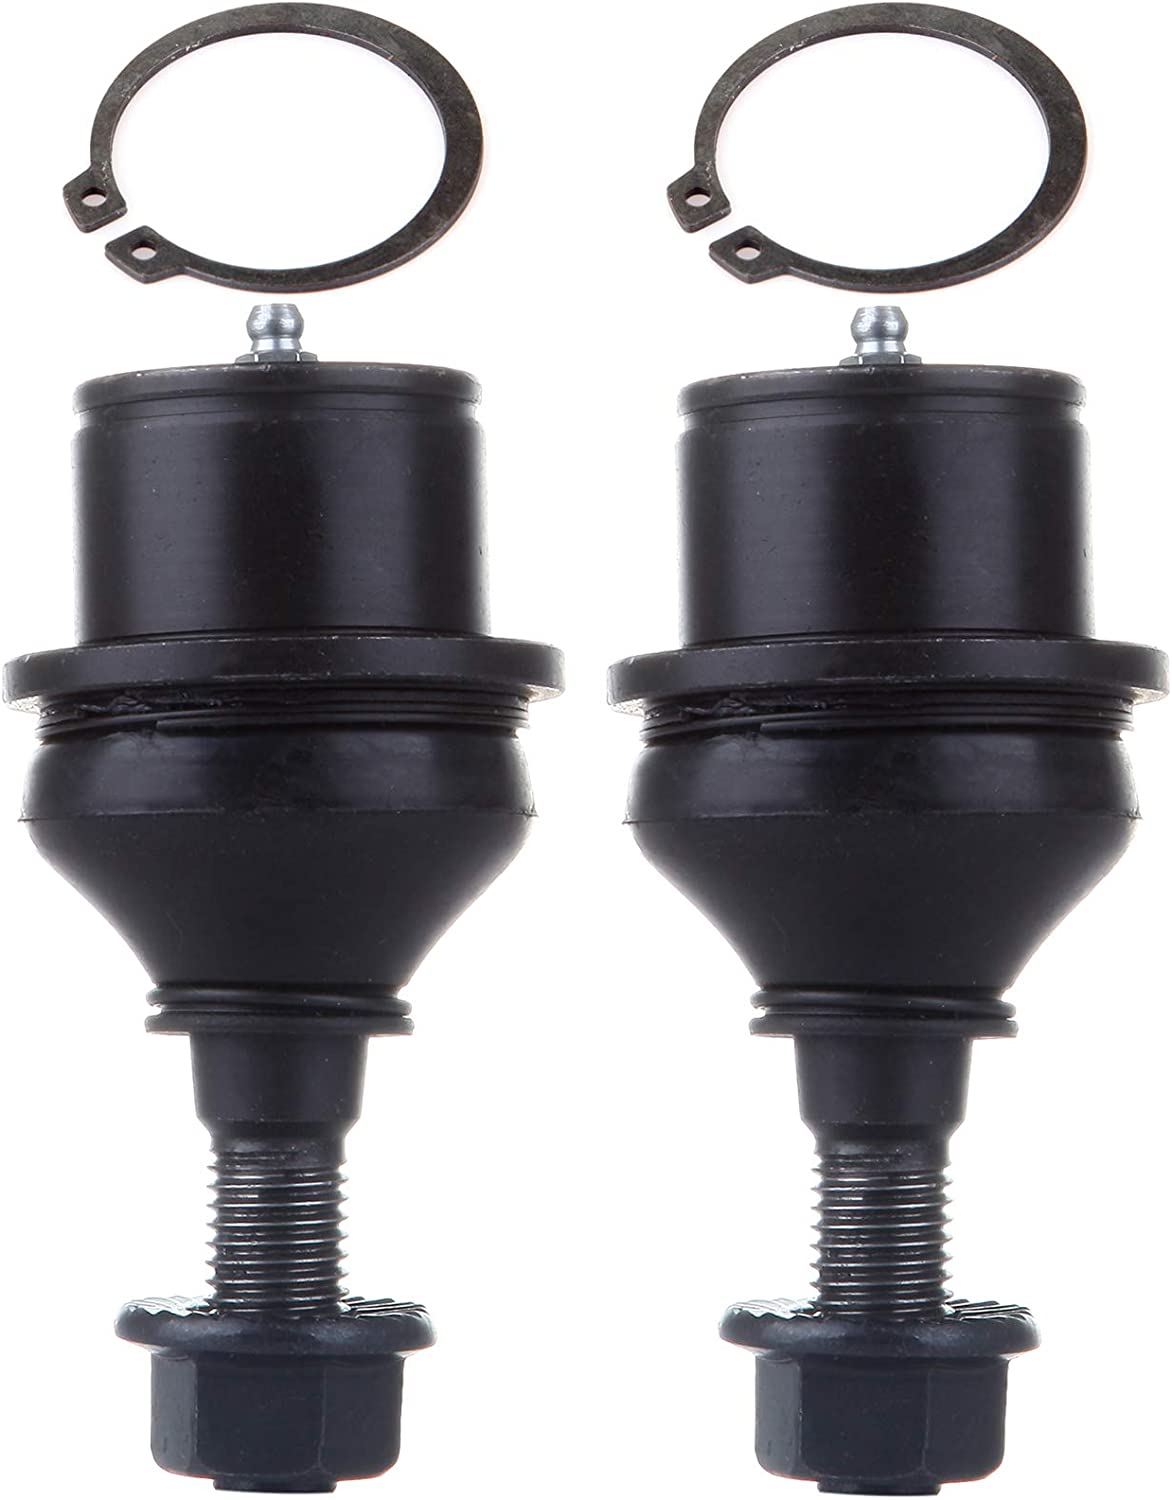 4x4 Models Only Bodeman Pair 2 Front Sway Bar End Links for 2005 2006 2007 2008 Ford F-150 /& Lincoln Mark LT